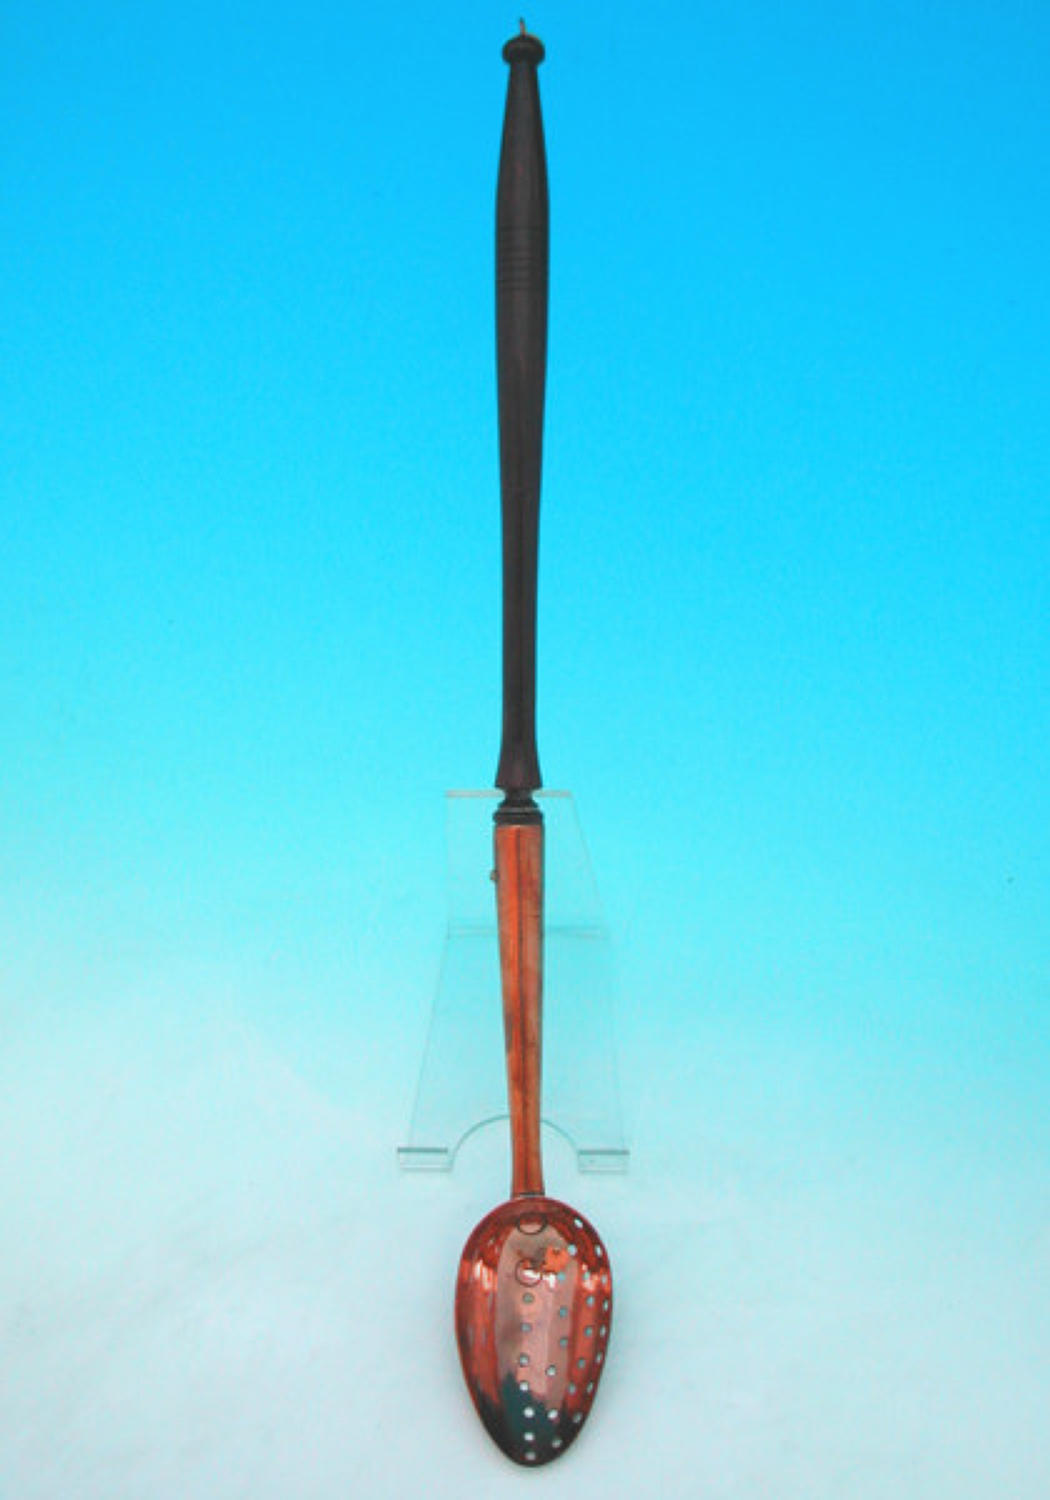 19thc Antique Copper Straining Ladle. English C1800 - 40